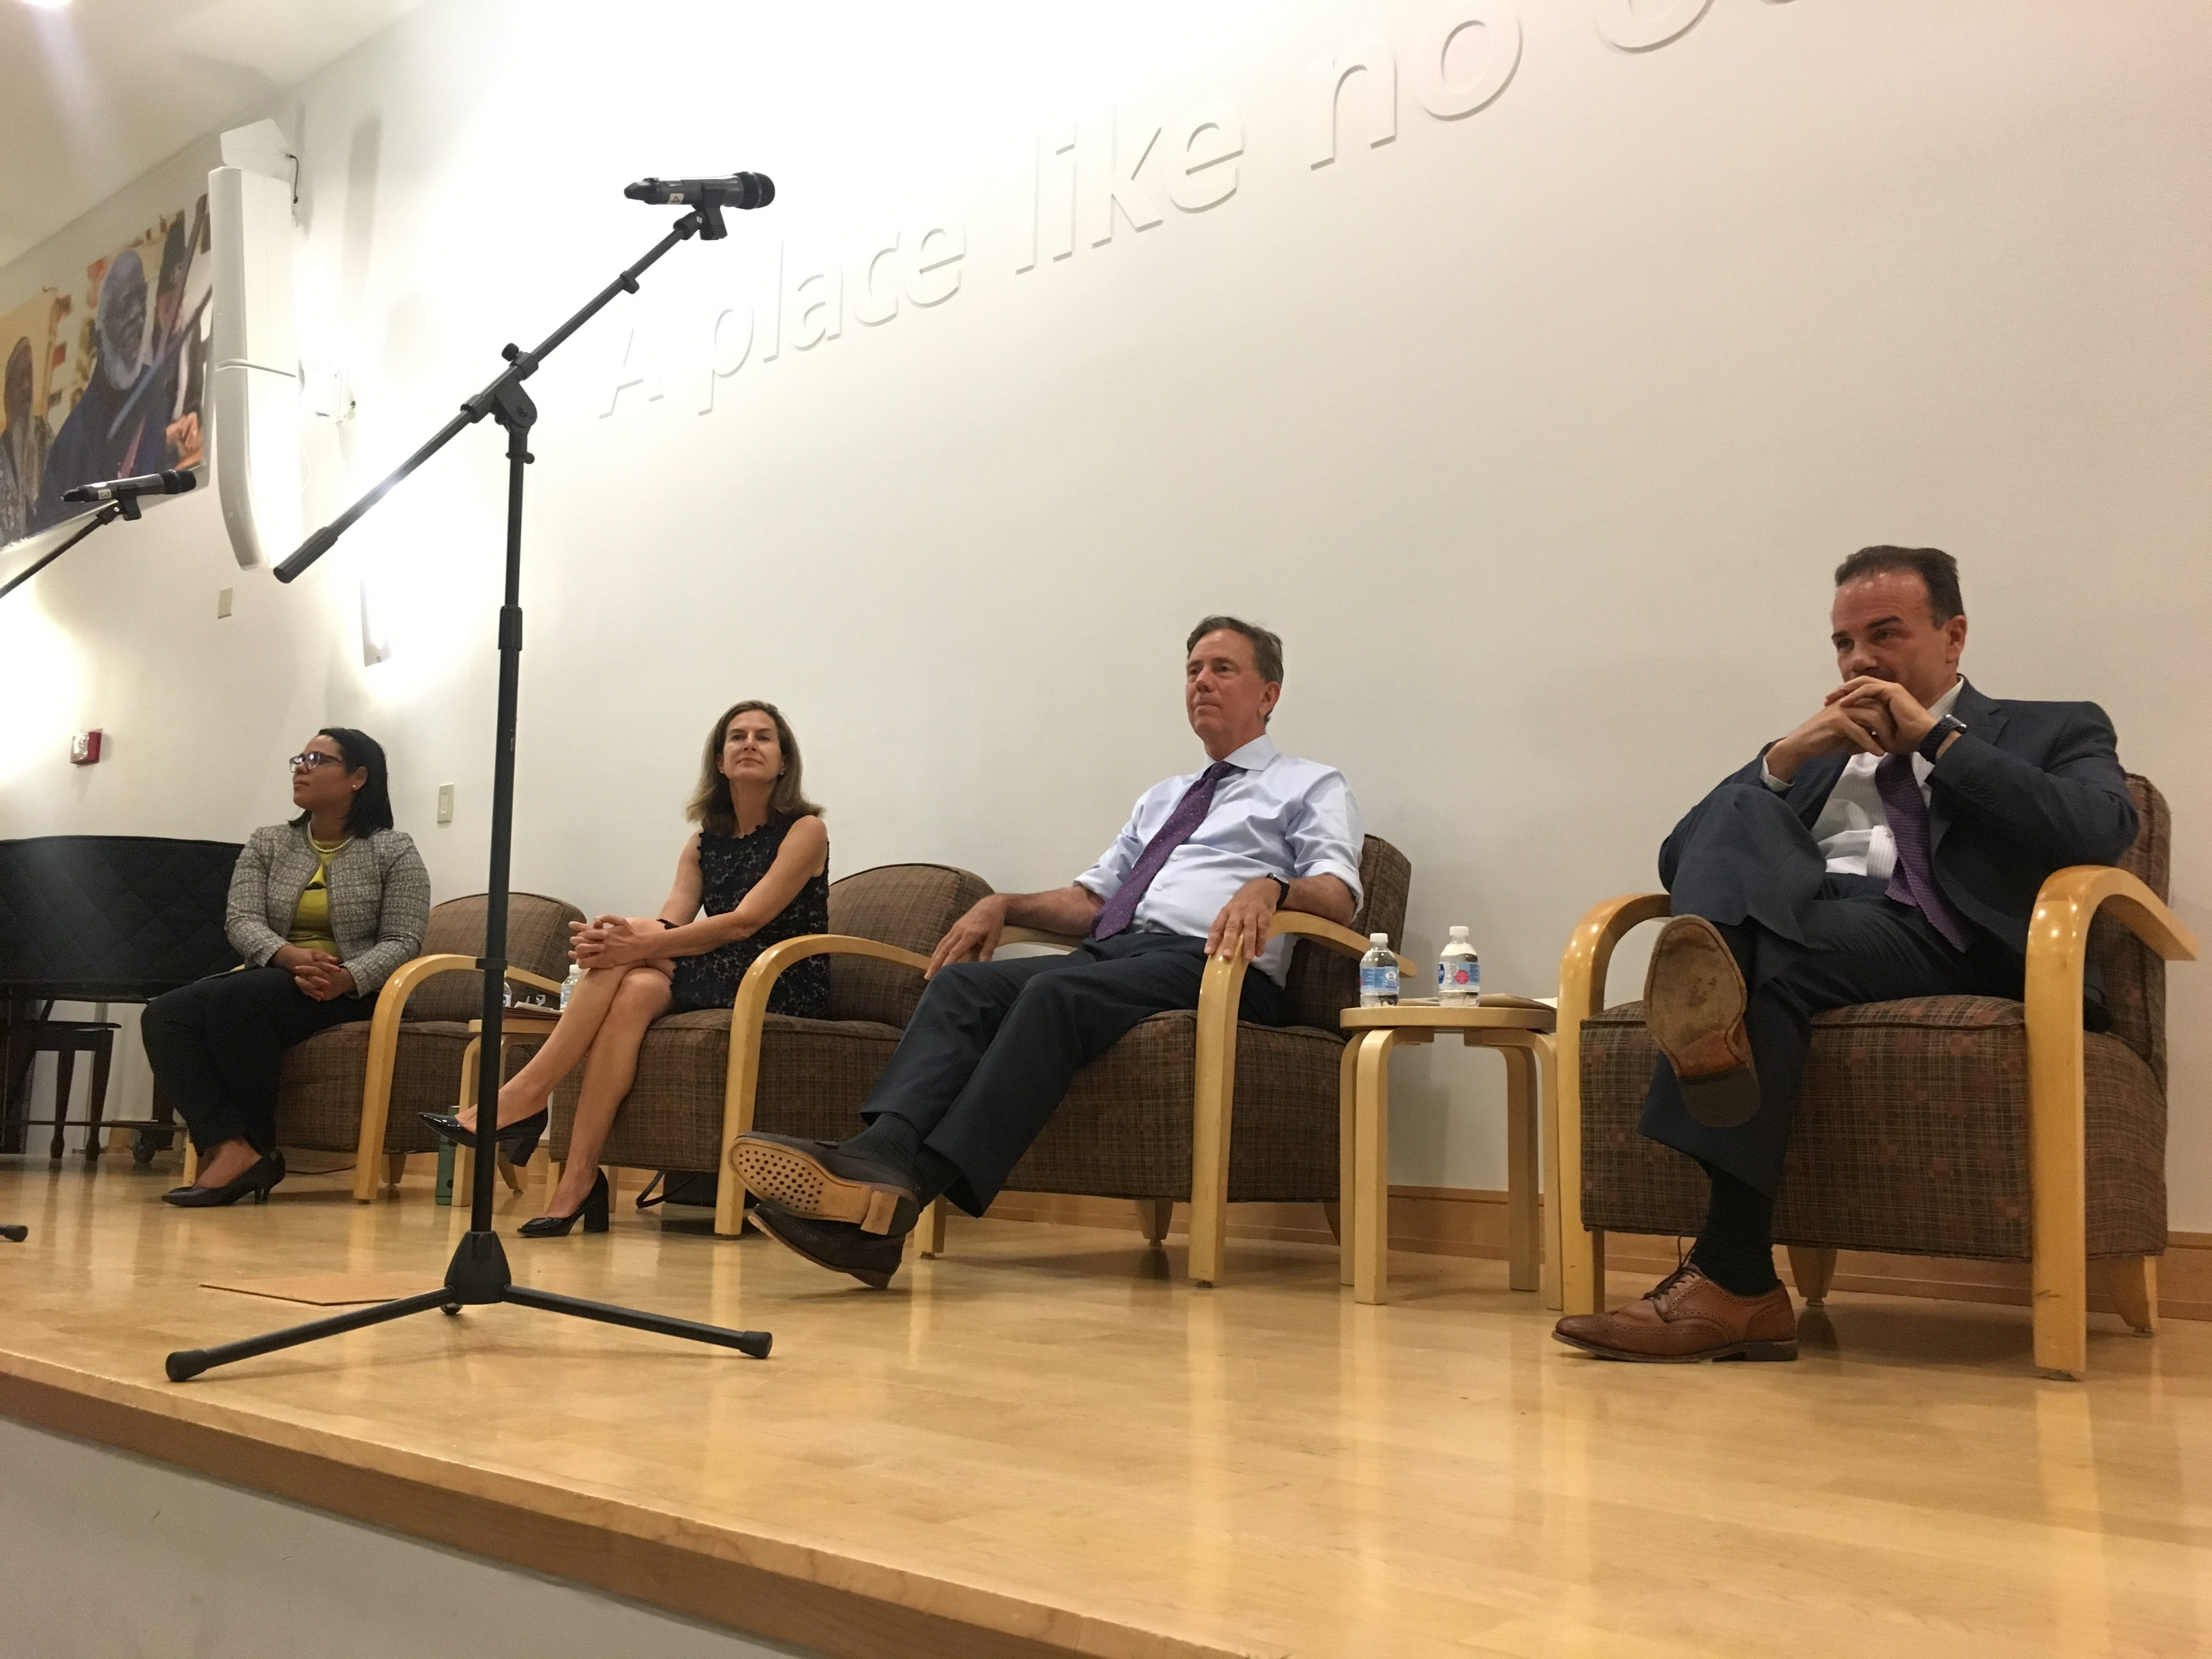 Democratic candidates vie for crowd approval during Hartford forum